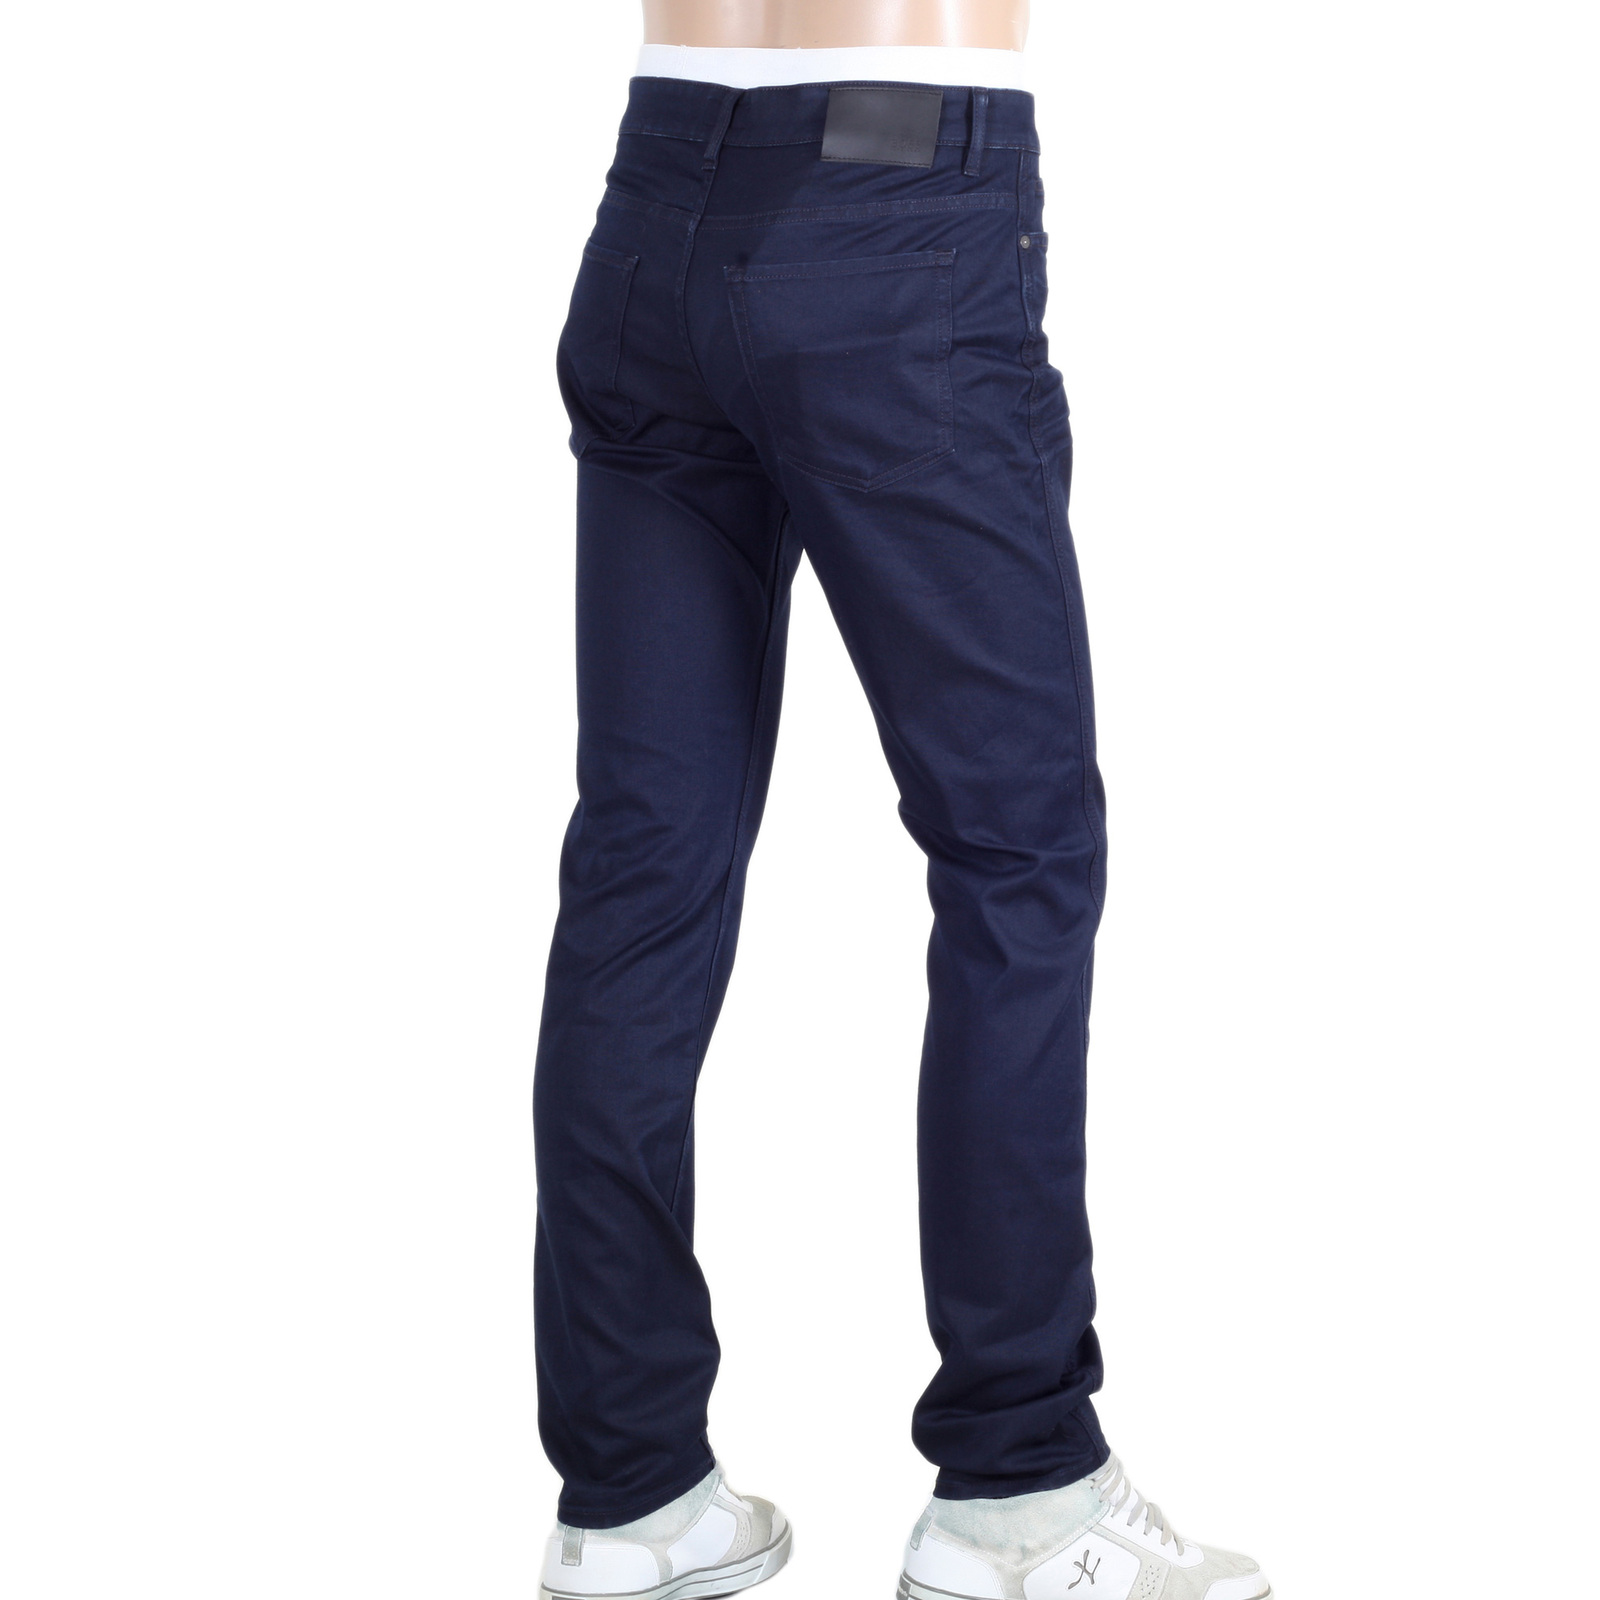 Buy Hugo Boss Black Slim Fit Jeans in Washed Dark Navy